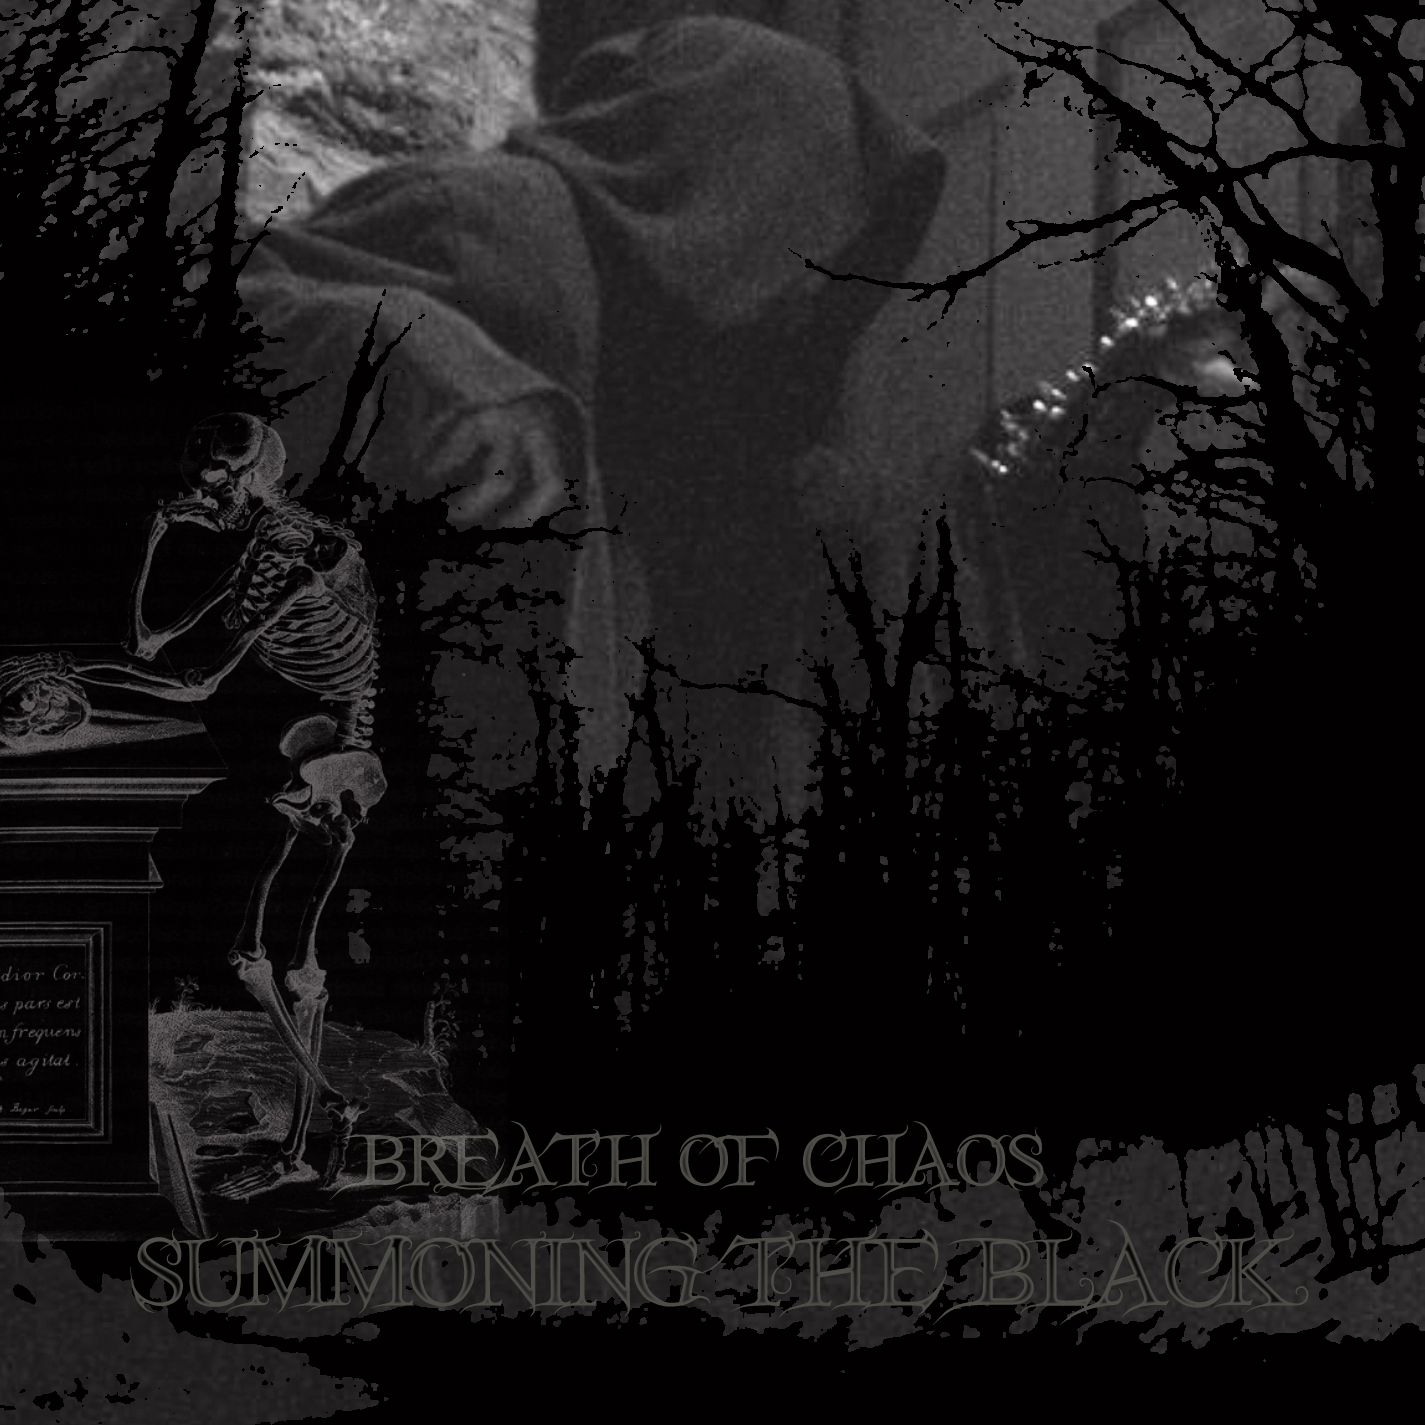 Breath Of Chaos - Summoning The Black (best of/compilation) (2011)